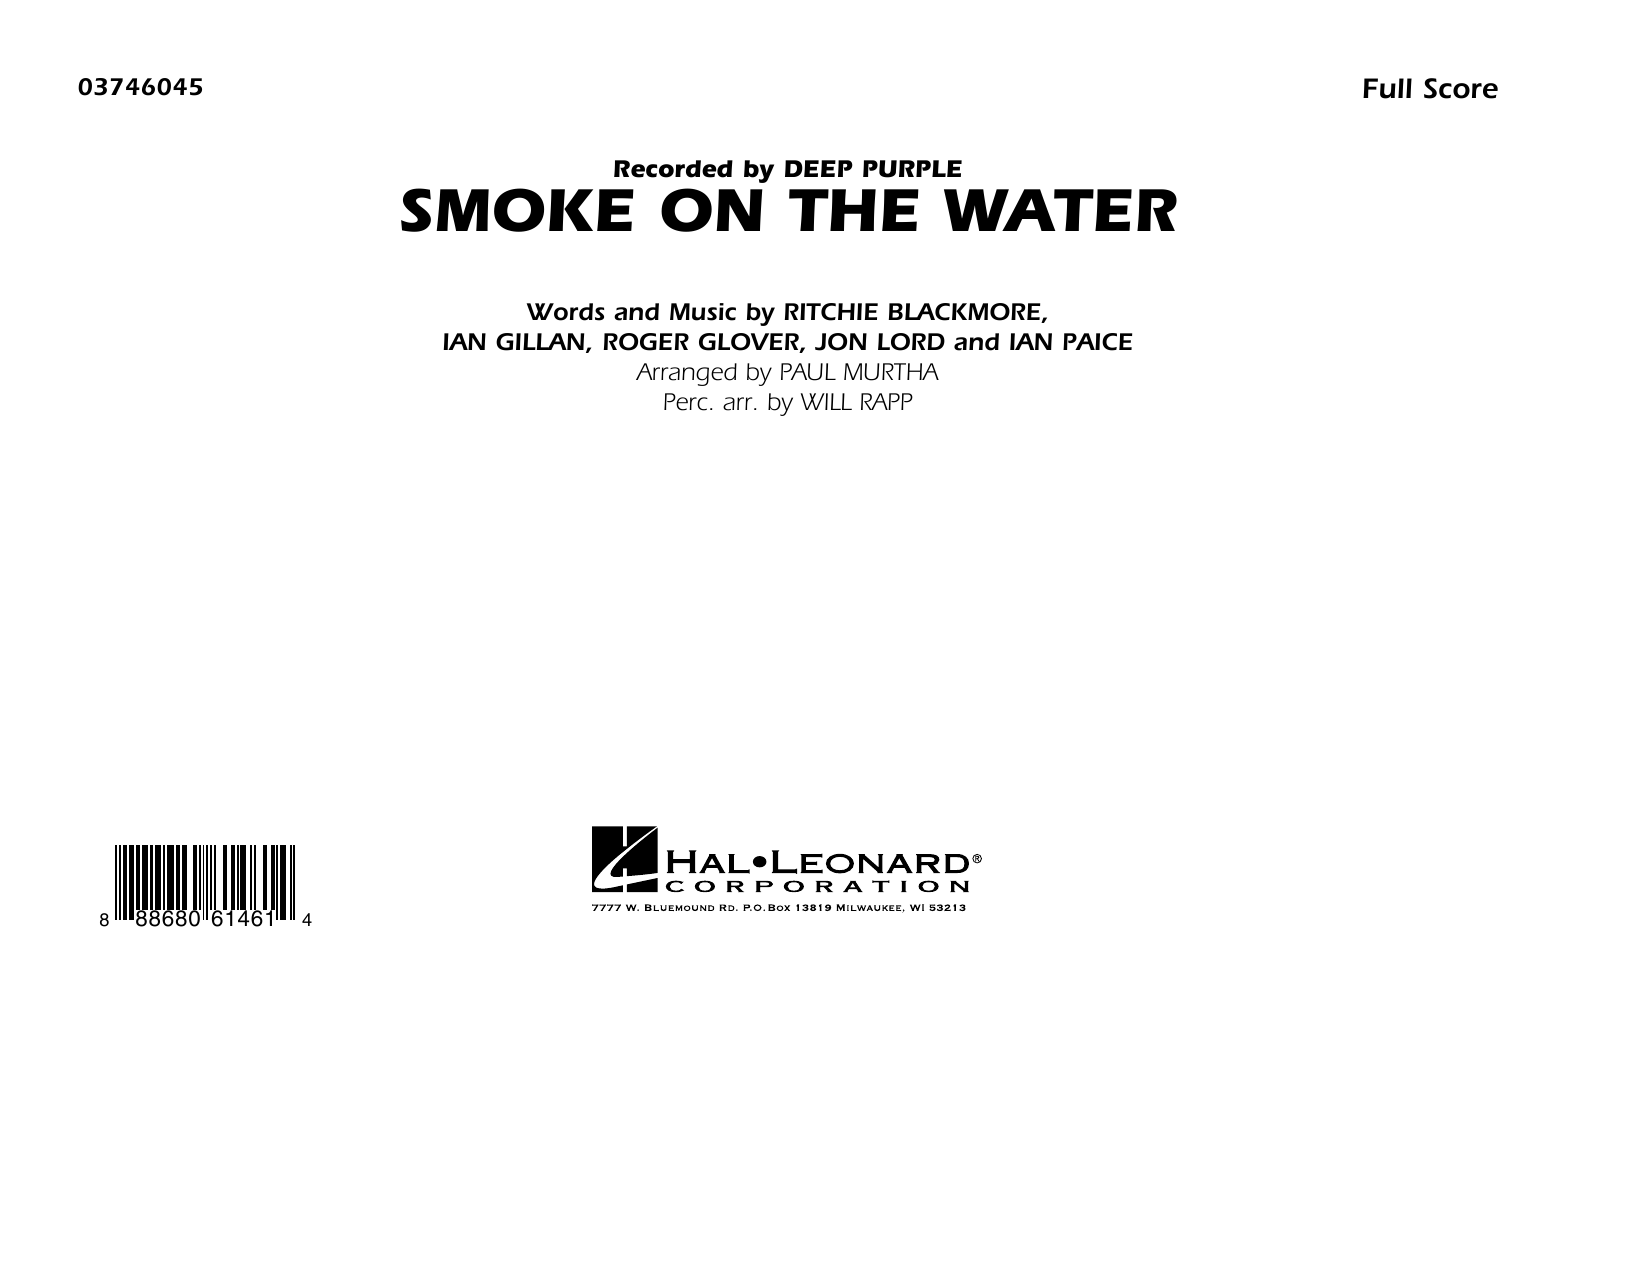 Smoke on the Water (COMPLETE) sheet music for marching band by Will Rapp, Deep Purple, Ian Gillan, Paul Murtha and Roger Glover. Score Image Preview.